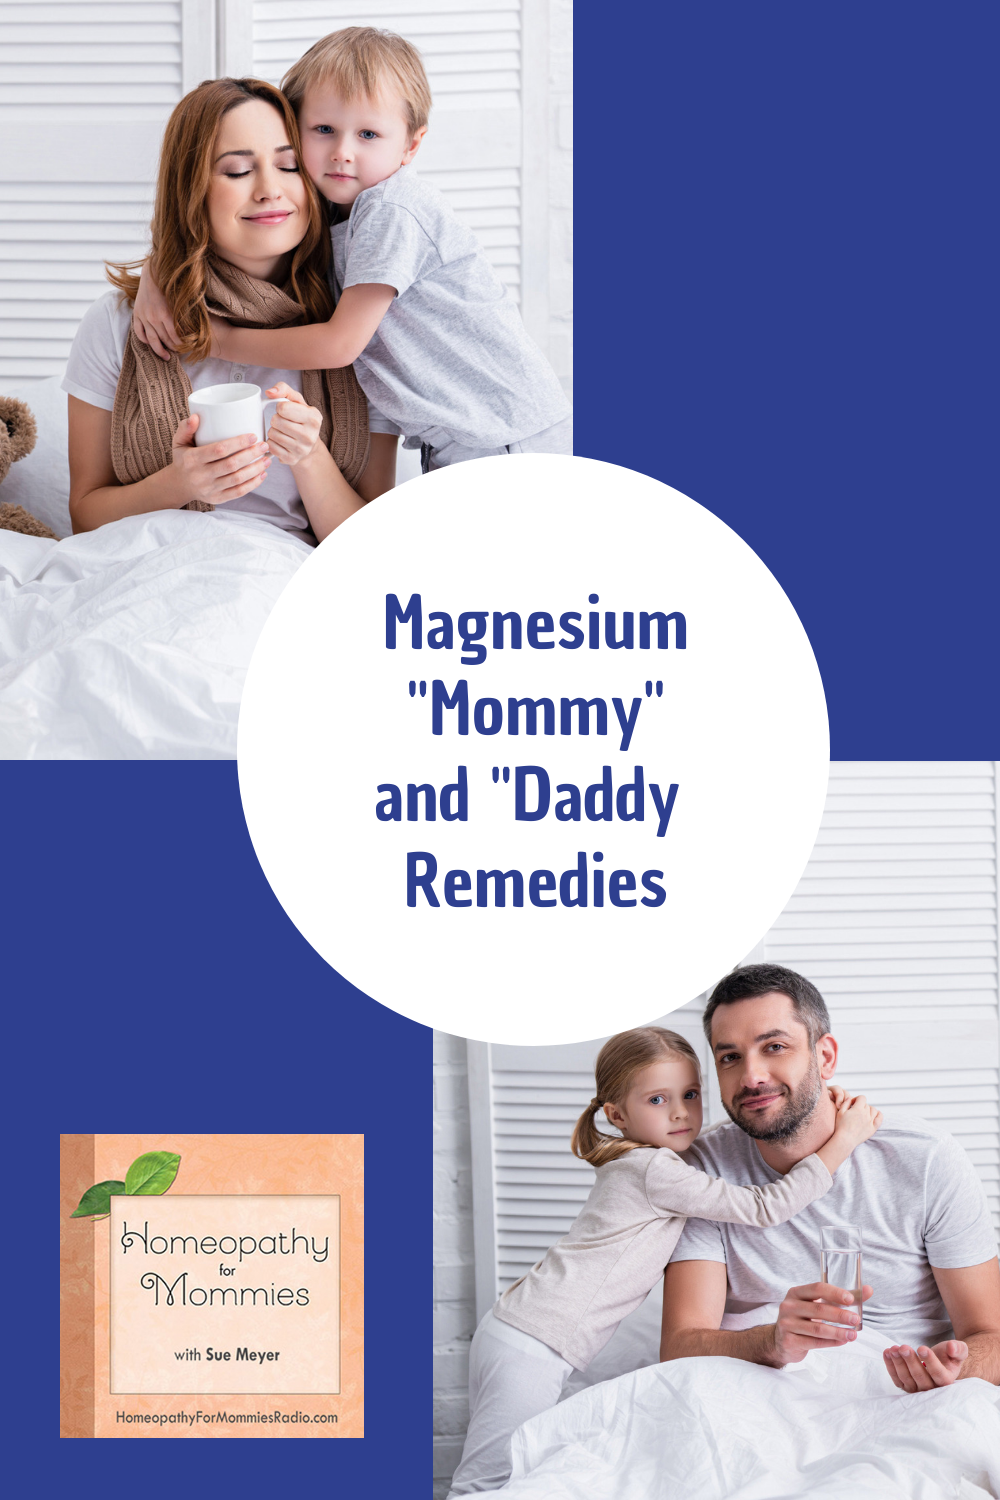 This week on Homeopathy for Mommies Sue Meyer talks about Magnesium Remedies for Abandonment … specifically magnesium muraticum and magnesium carbonicum.